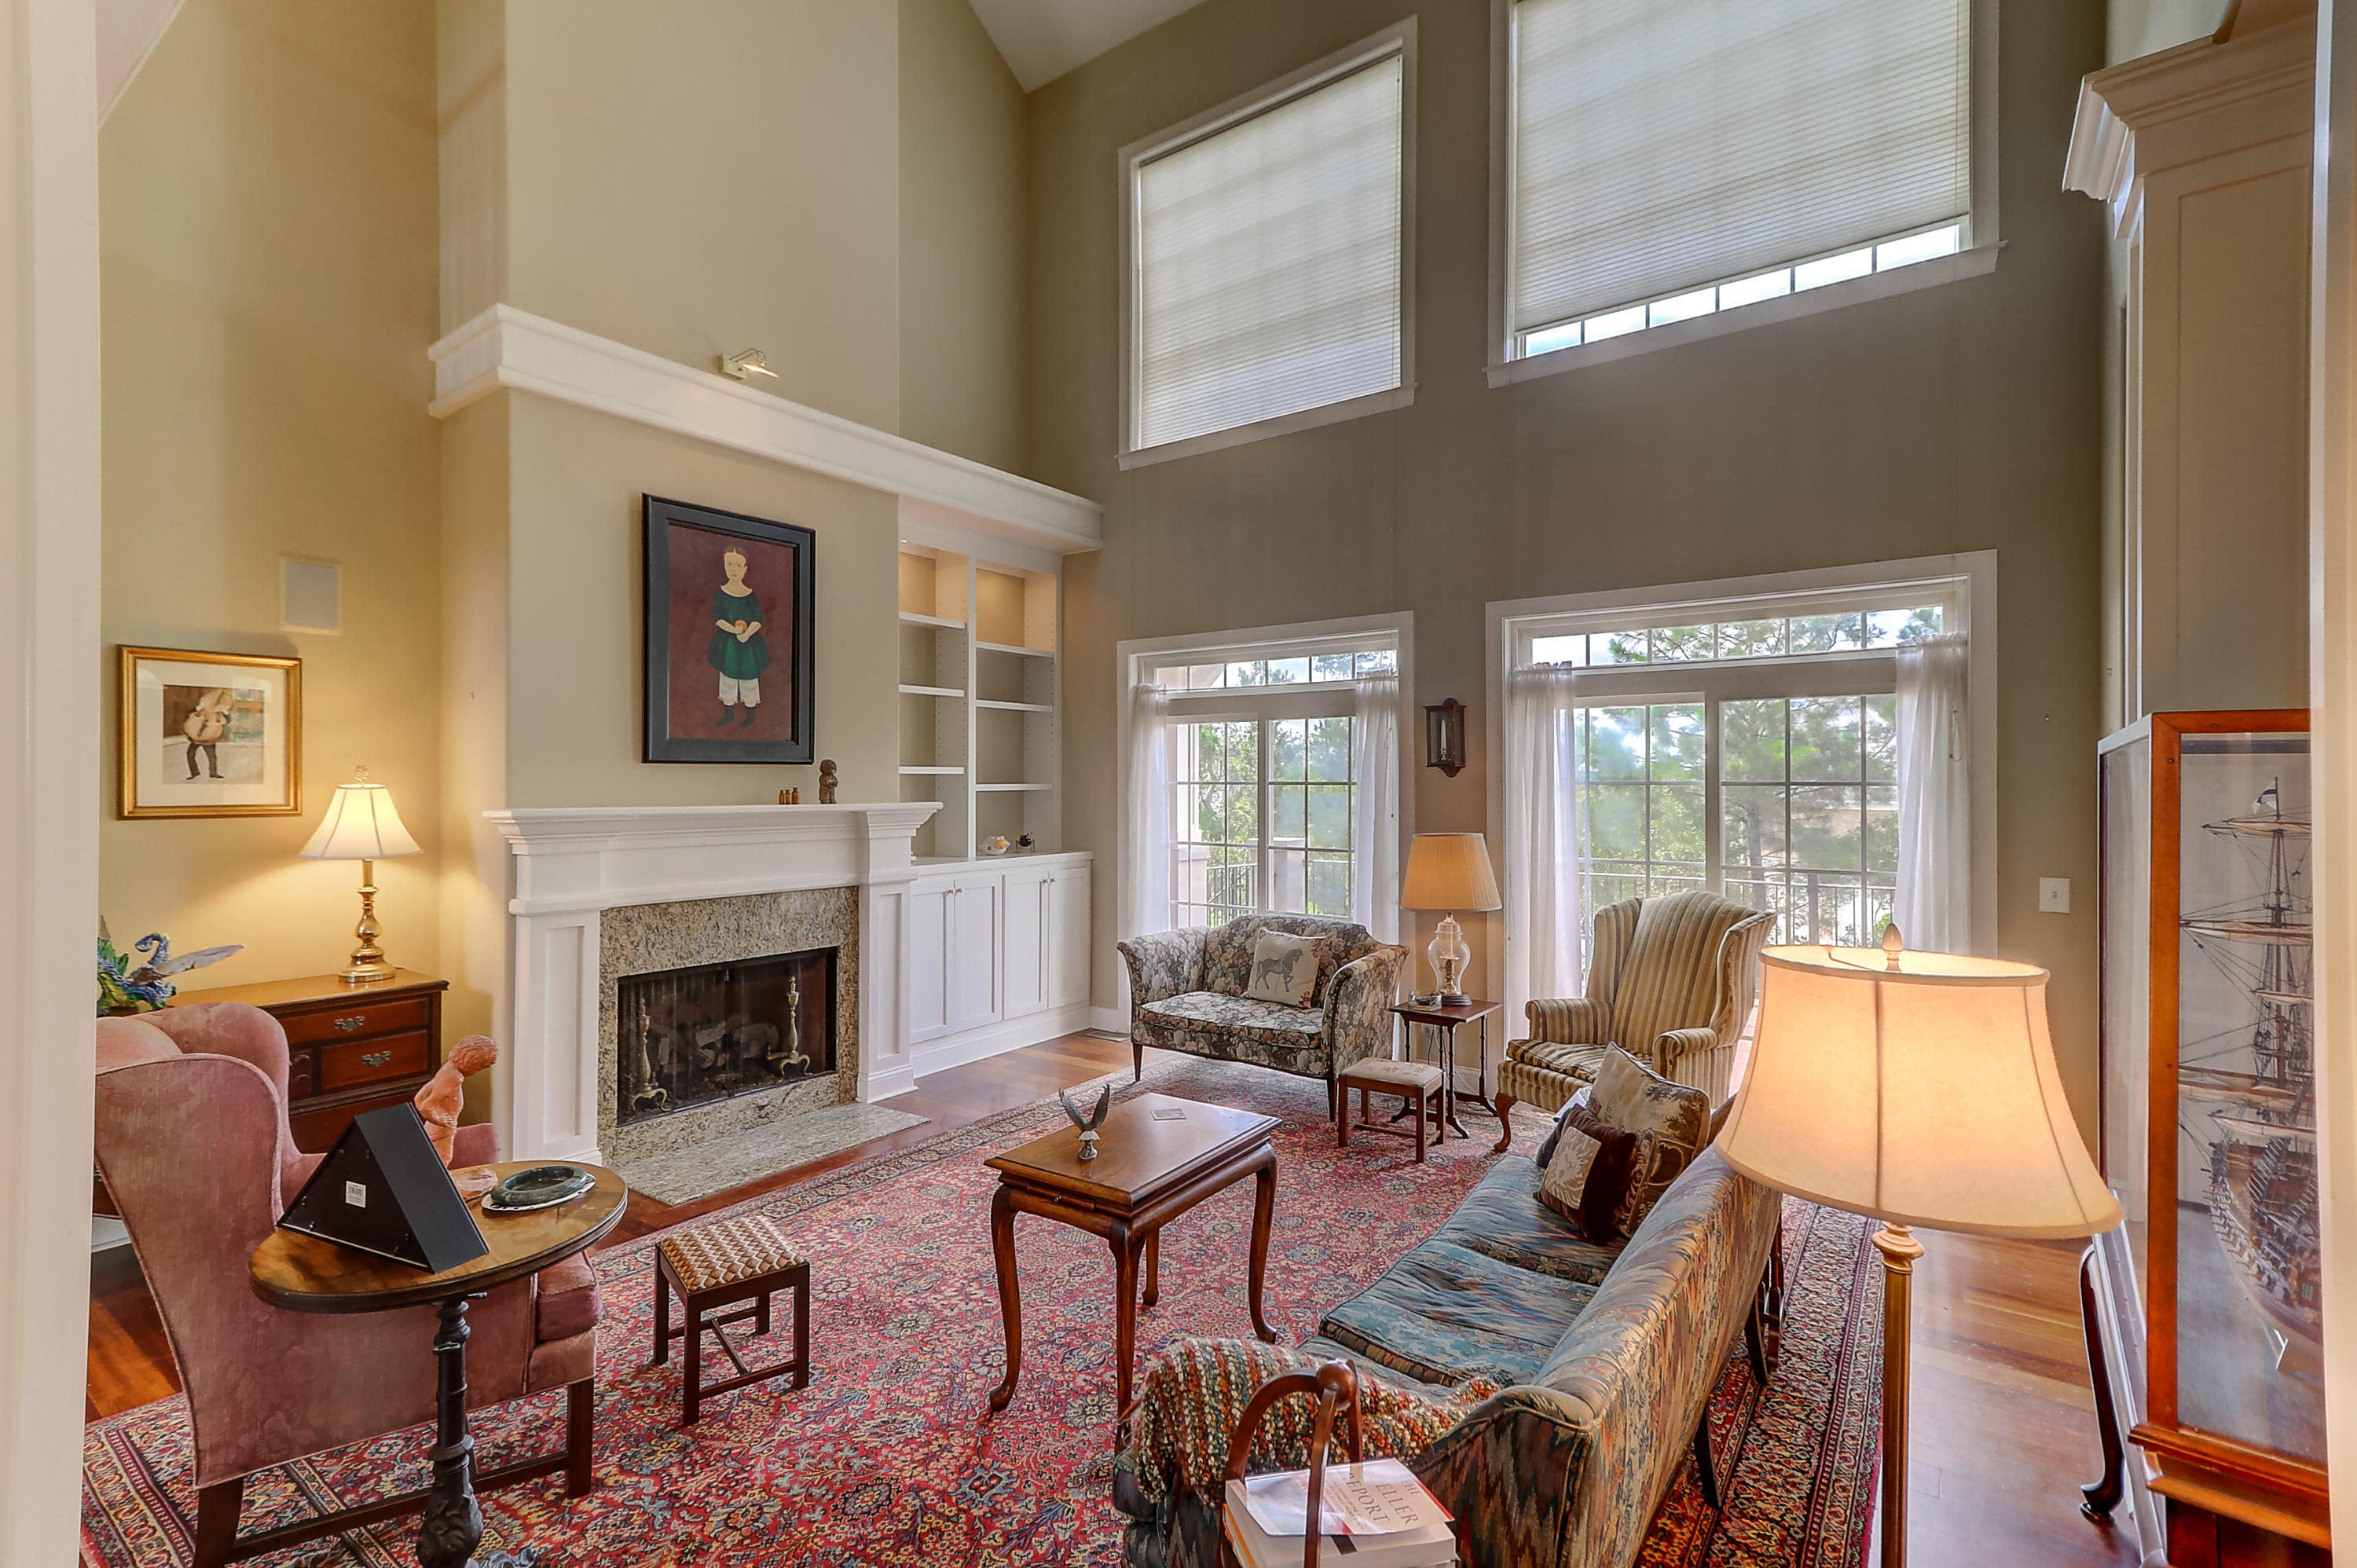 Beresford Creek Landing Homes For Sale - 1101 Beresford Run, Charleston, SC - 21